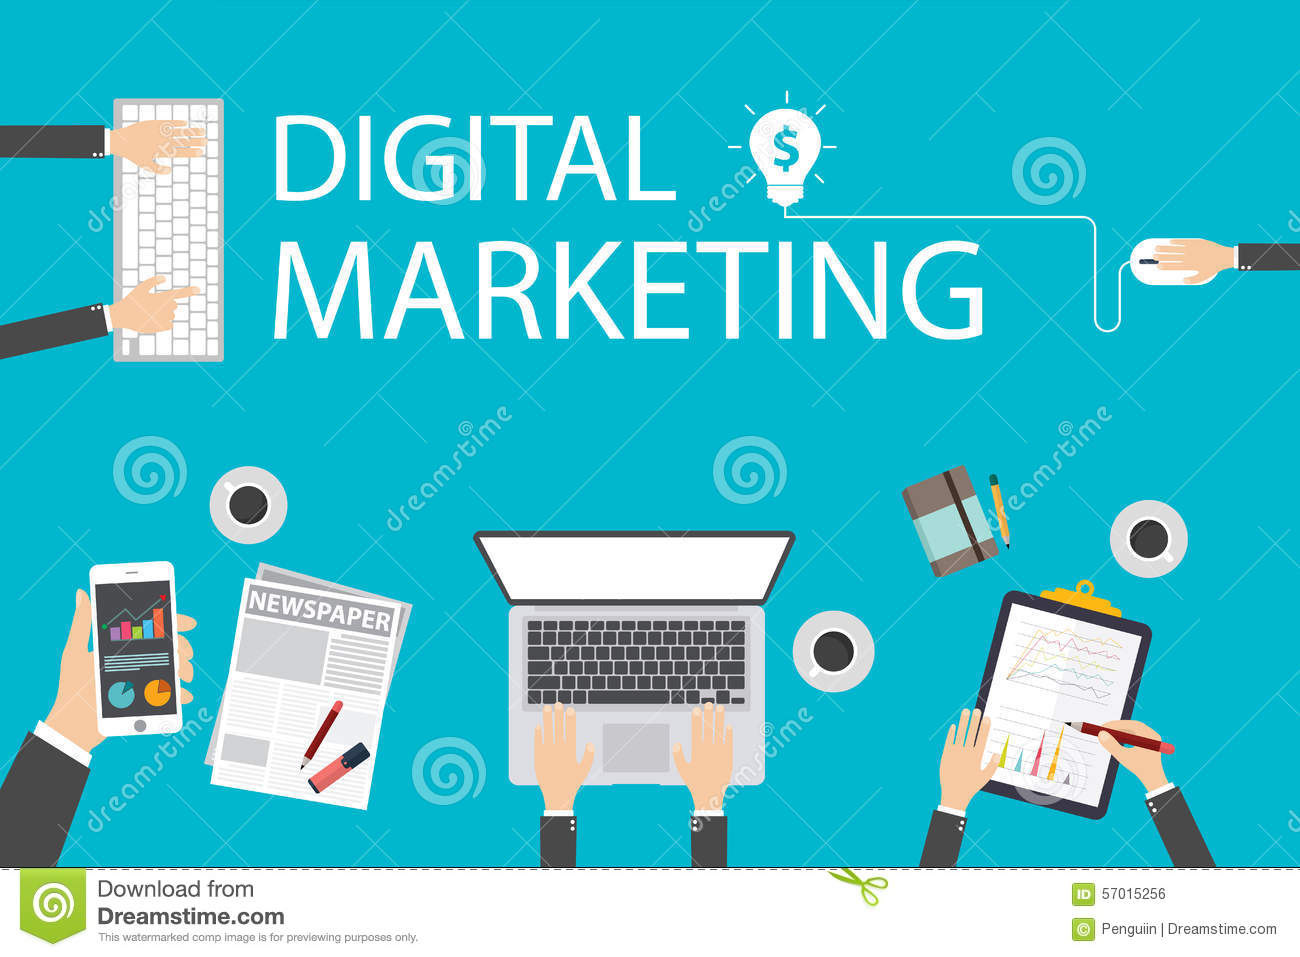 Flat design illustration concept for digital marketing. Concept for web banner